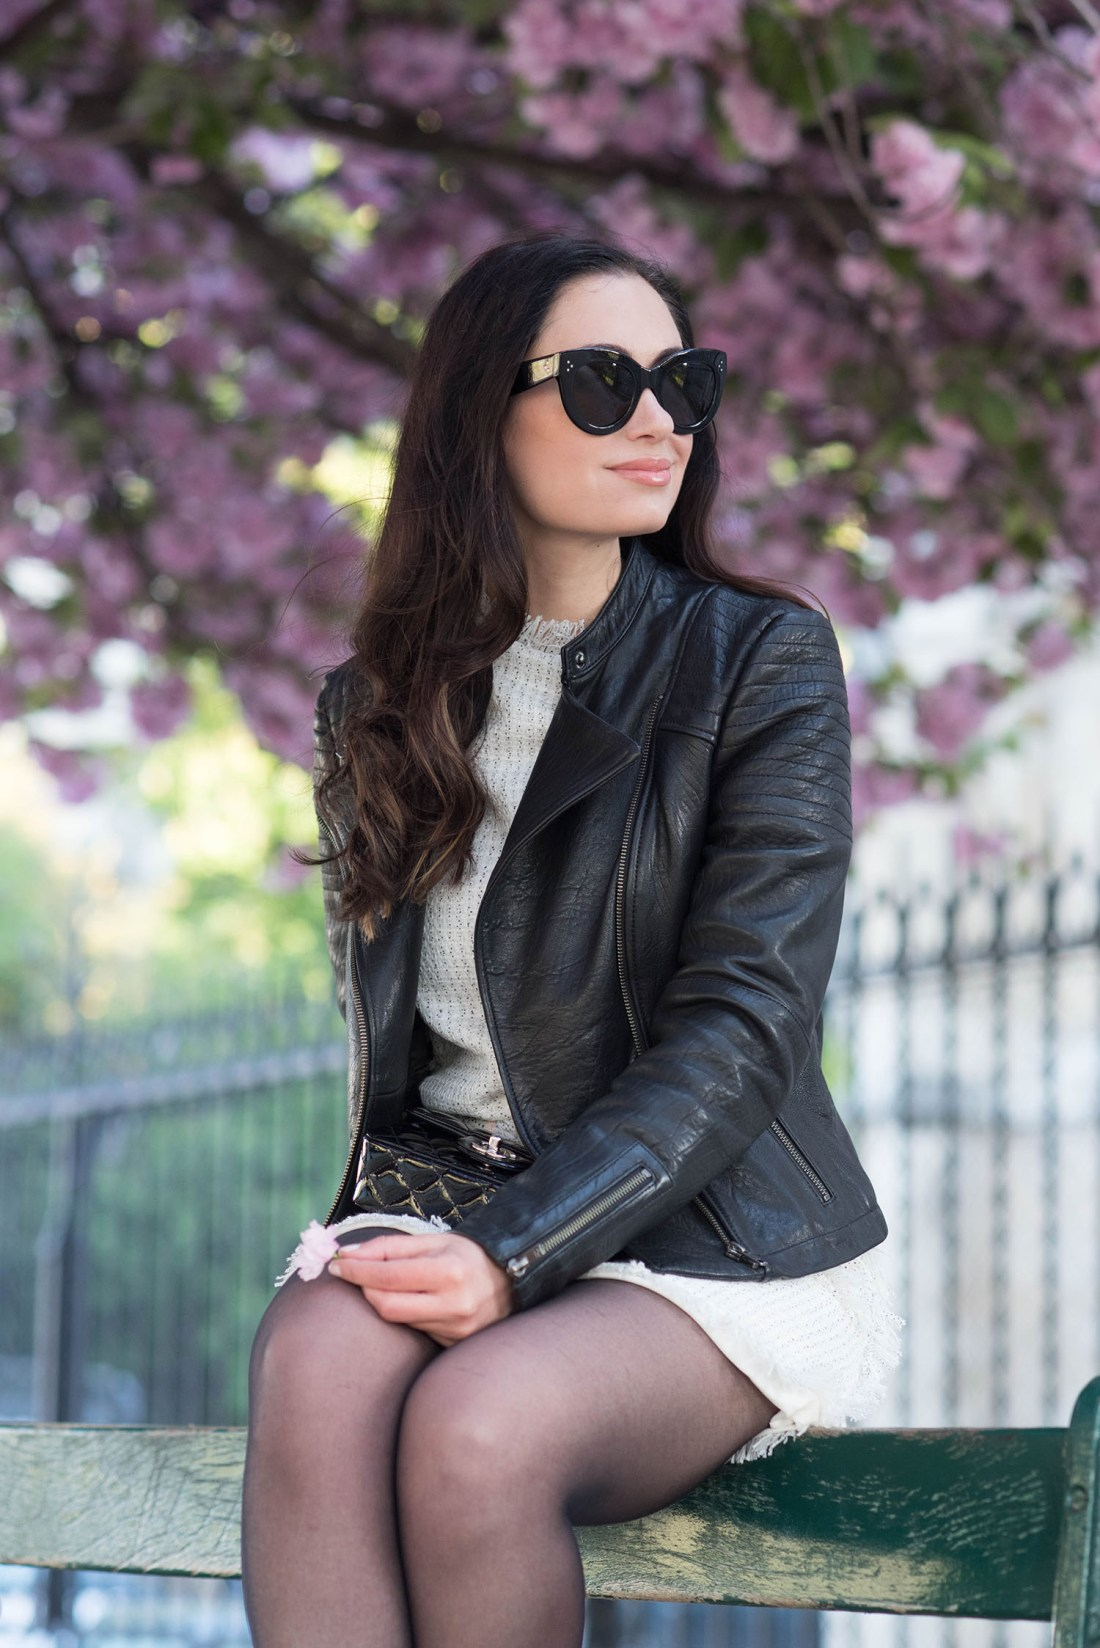 Portrait of style blogger Cee Fardoe of Coco & Vera, wearing a leather jacket and Celine sunglasses